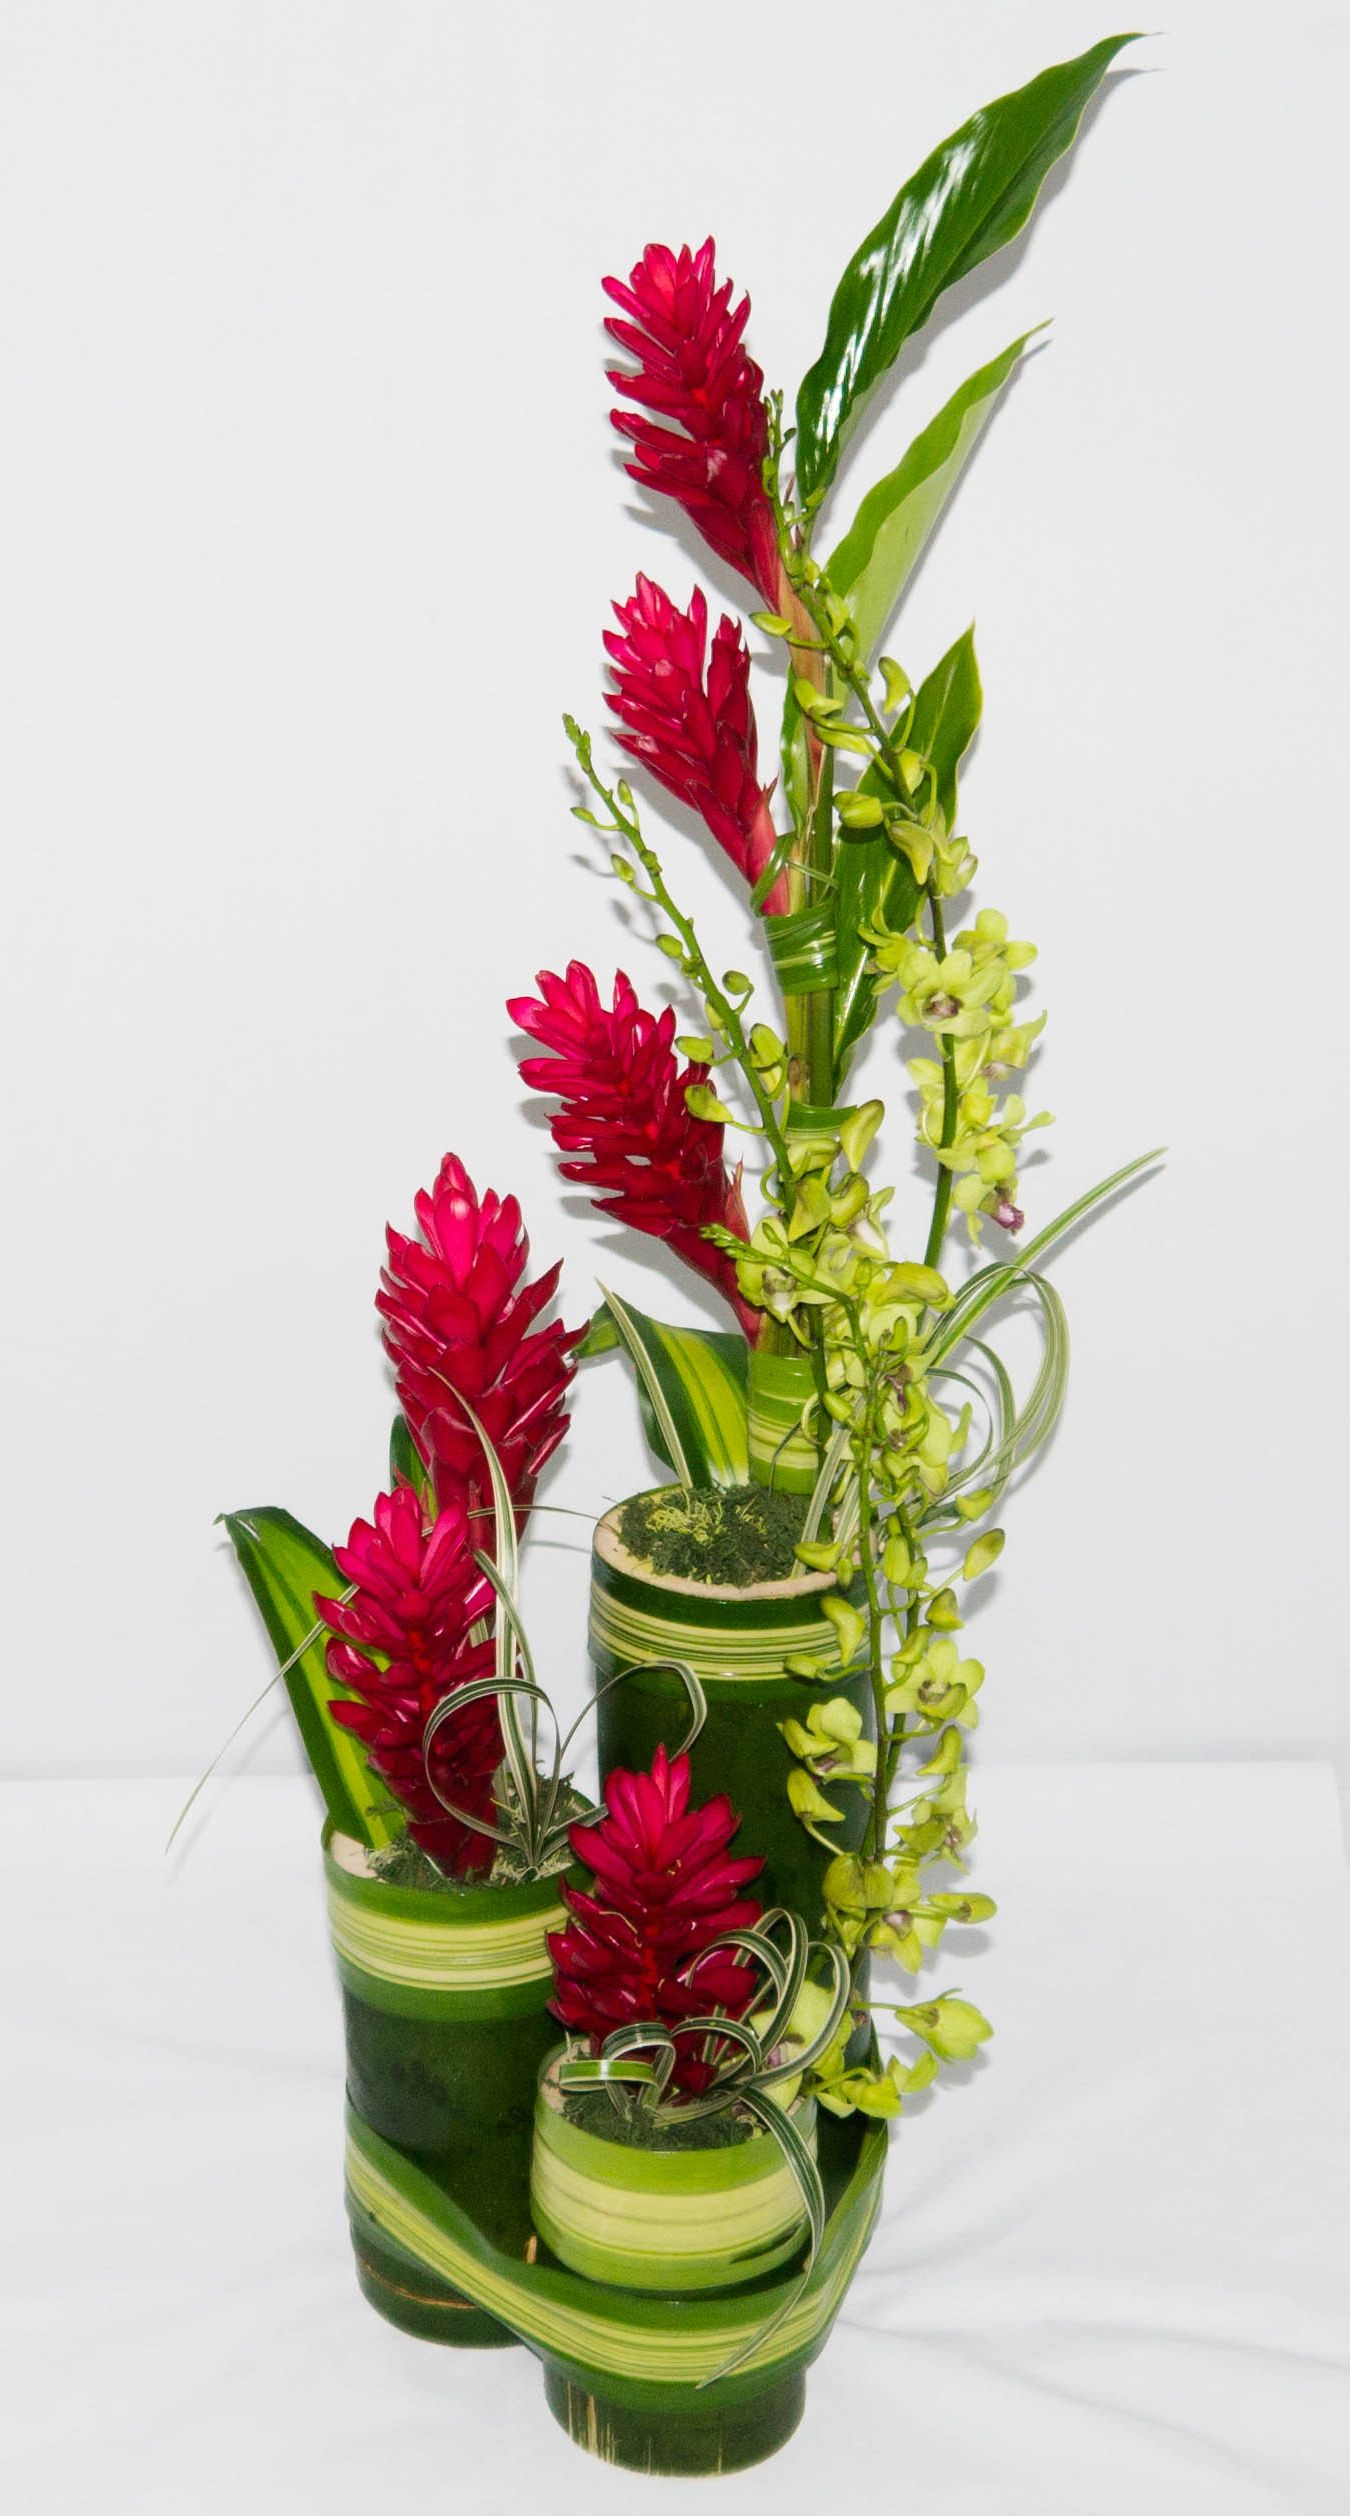 Our tropical design of ginger lilies and dendrobium